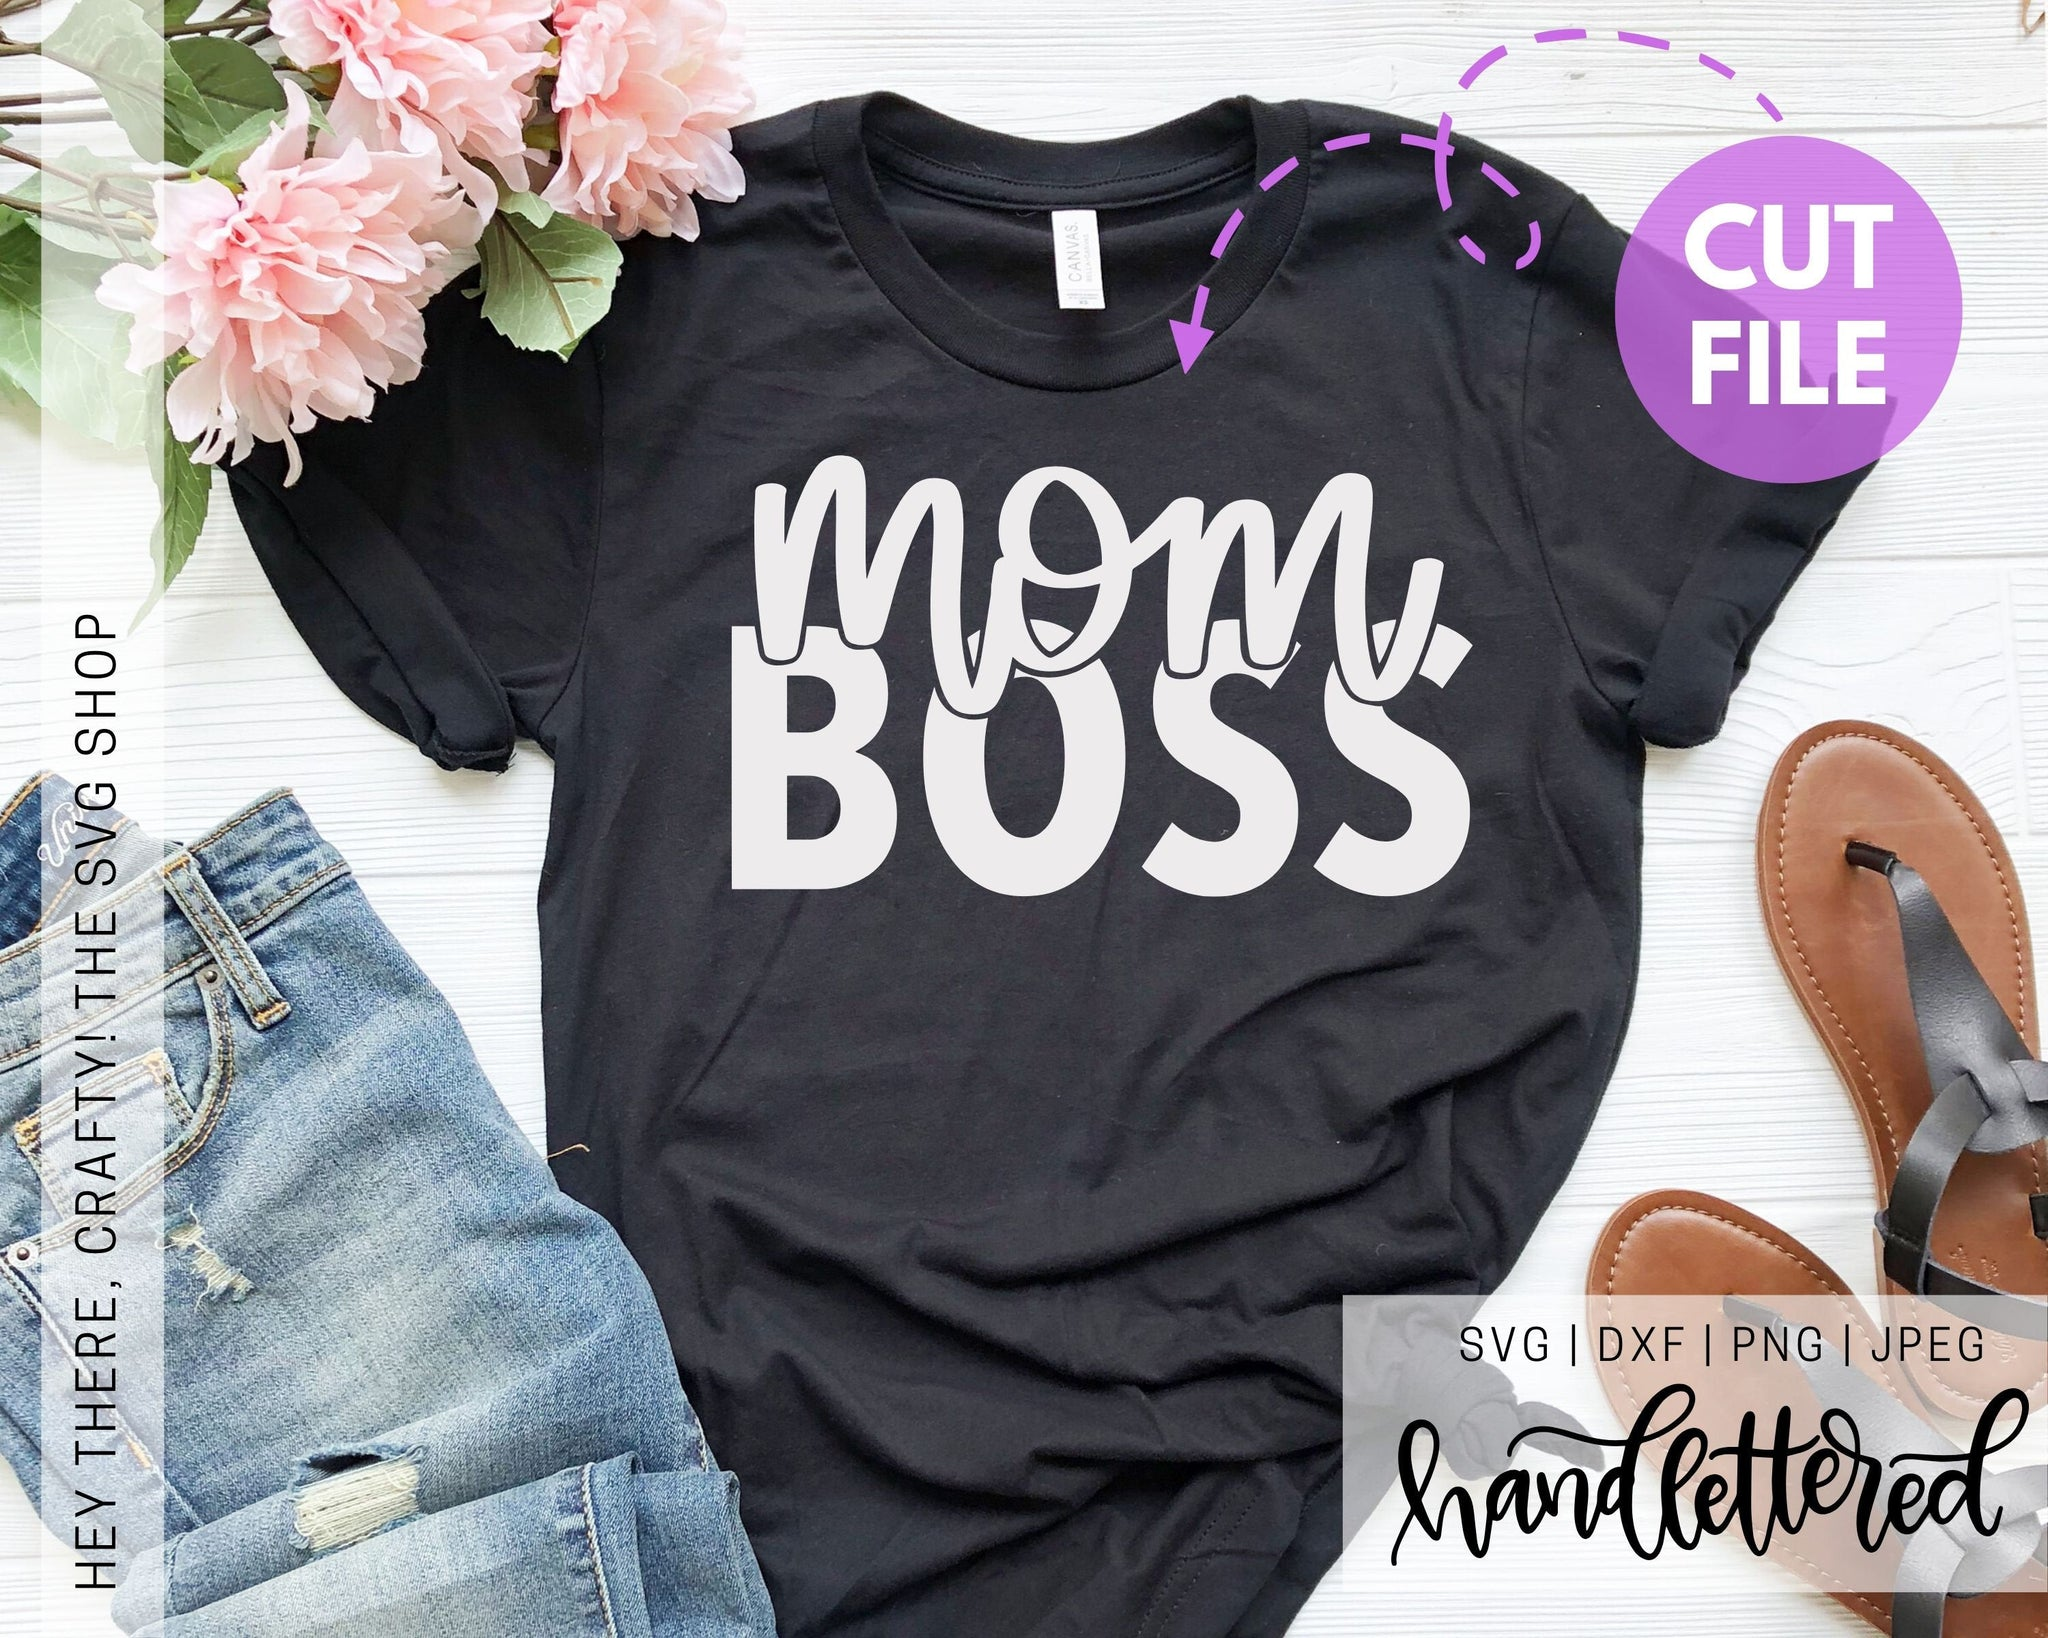 Mom Boss | SVG, PNG, DXF, JPEG